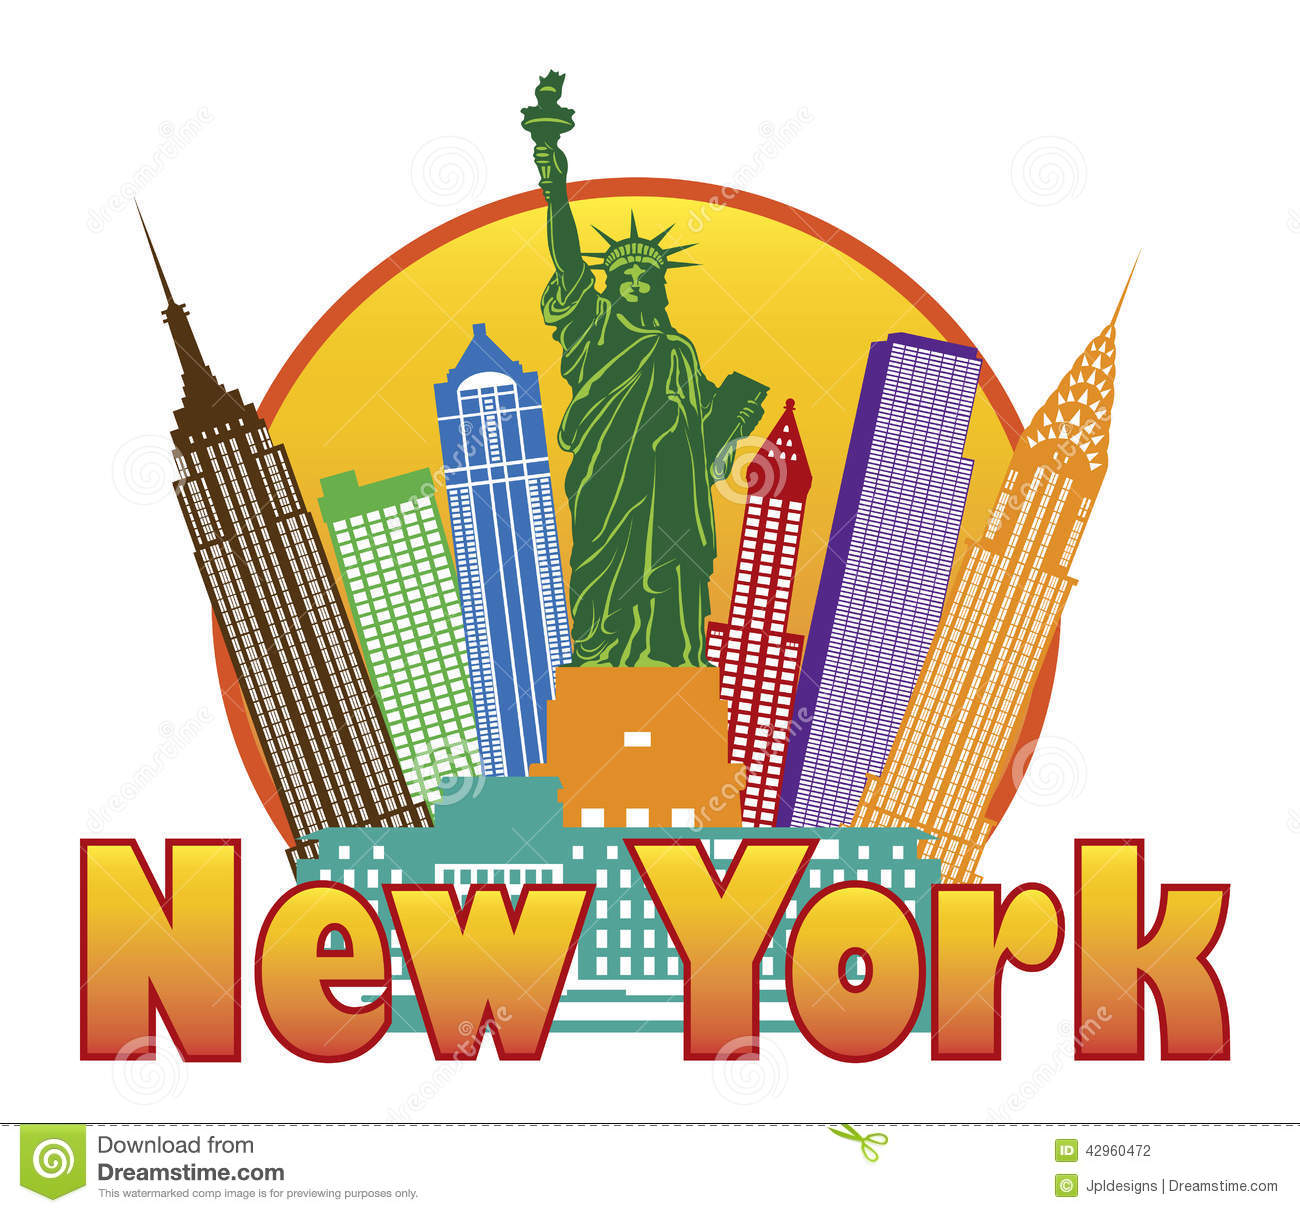 Clip Art New York City Clip Art new york clipart kid city colorful skyline with statue of liberty in circle